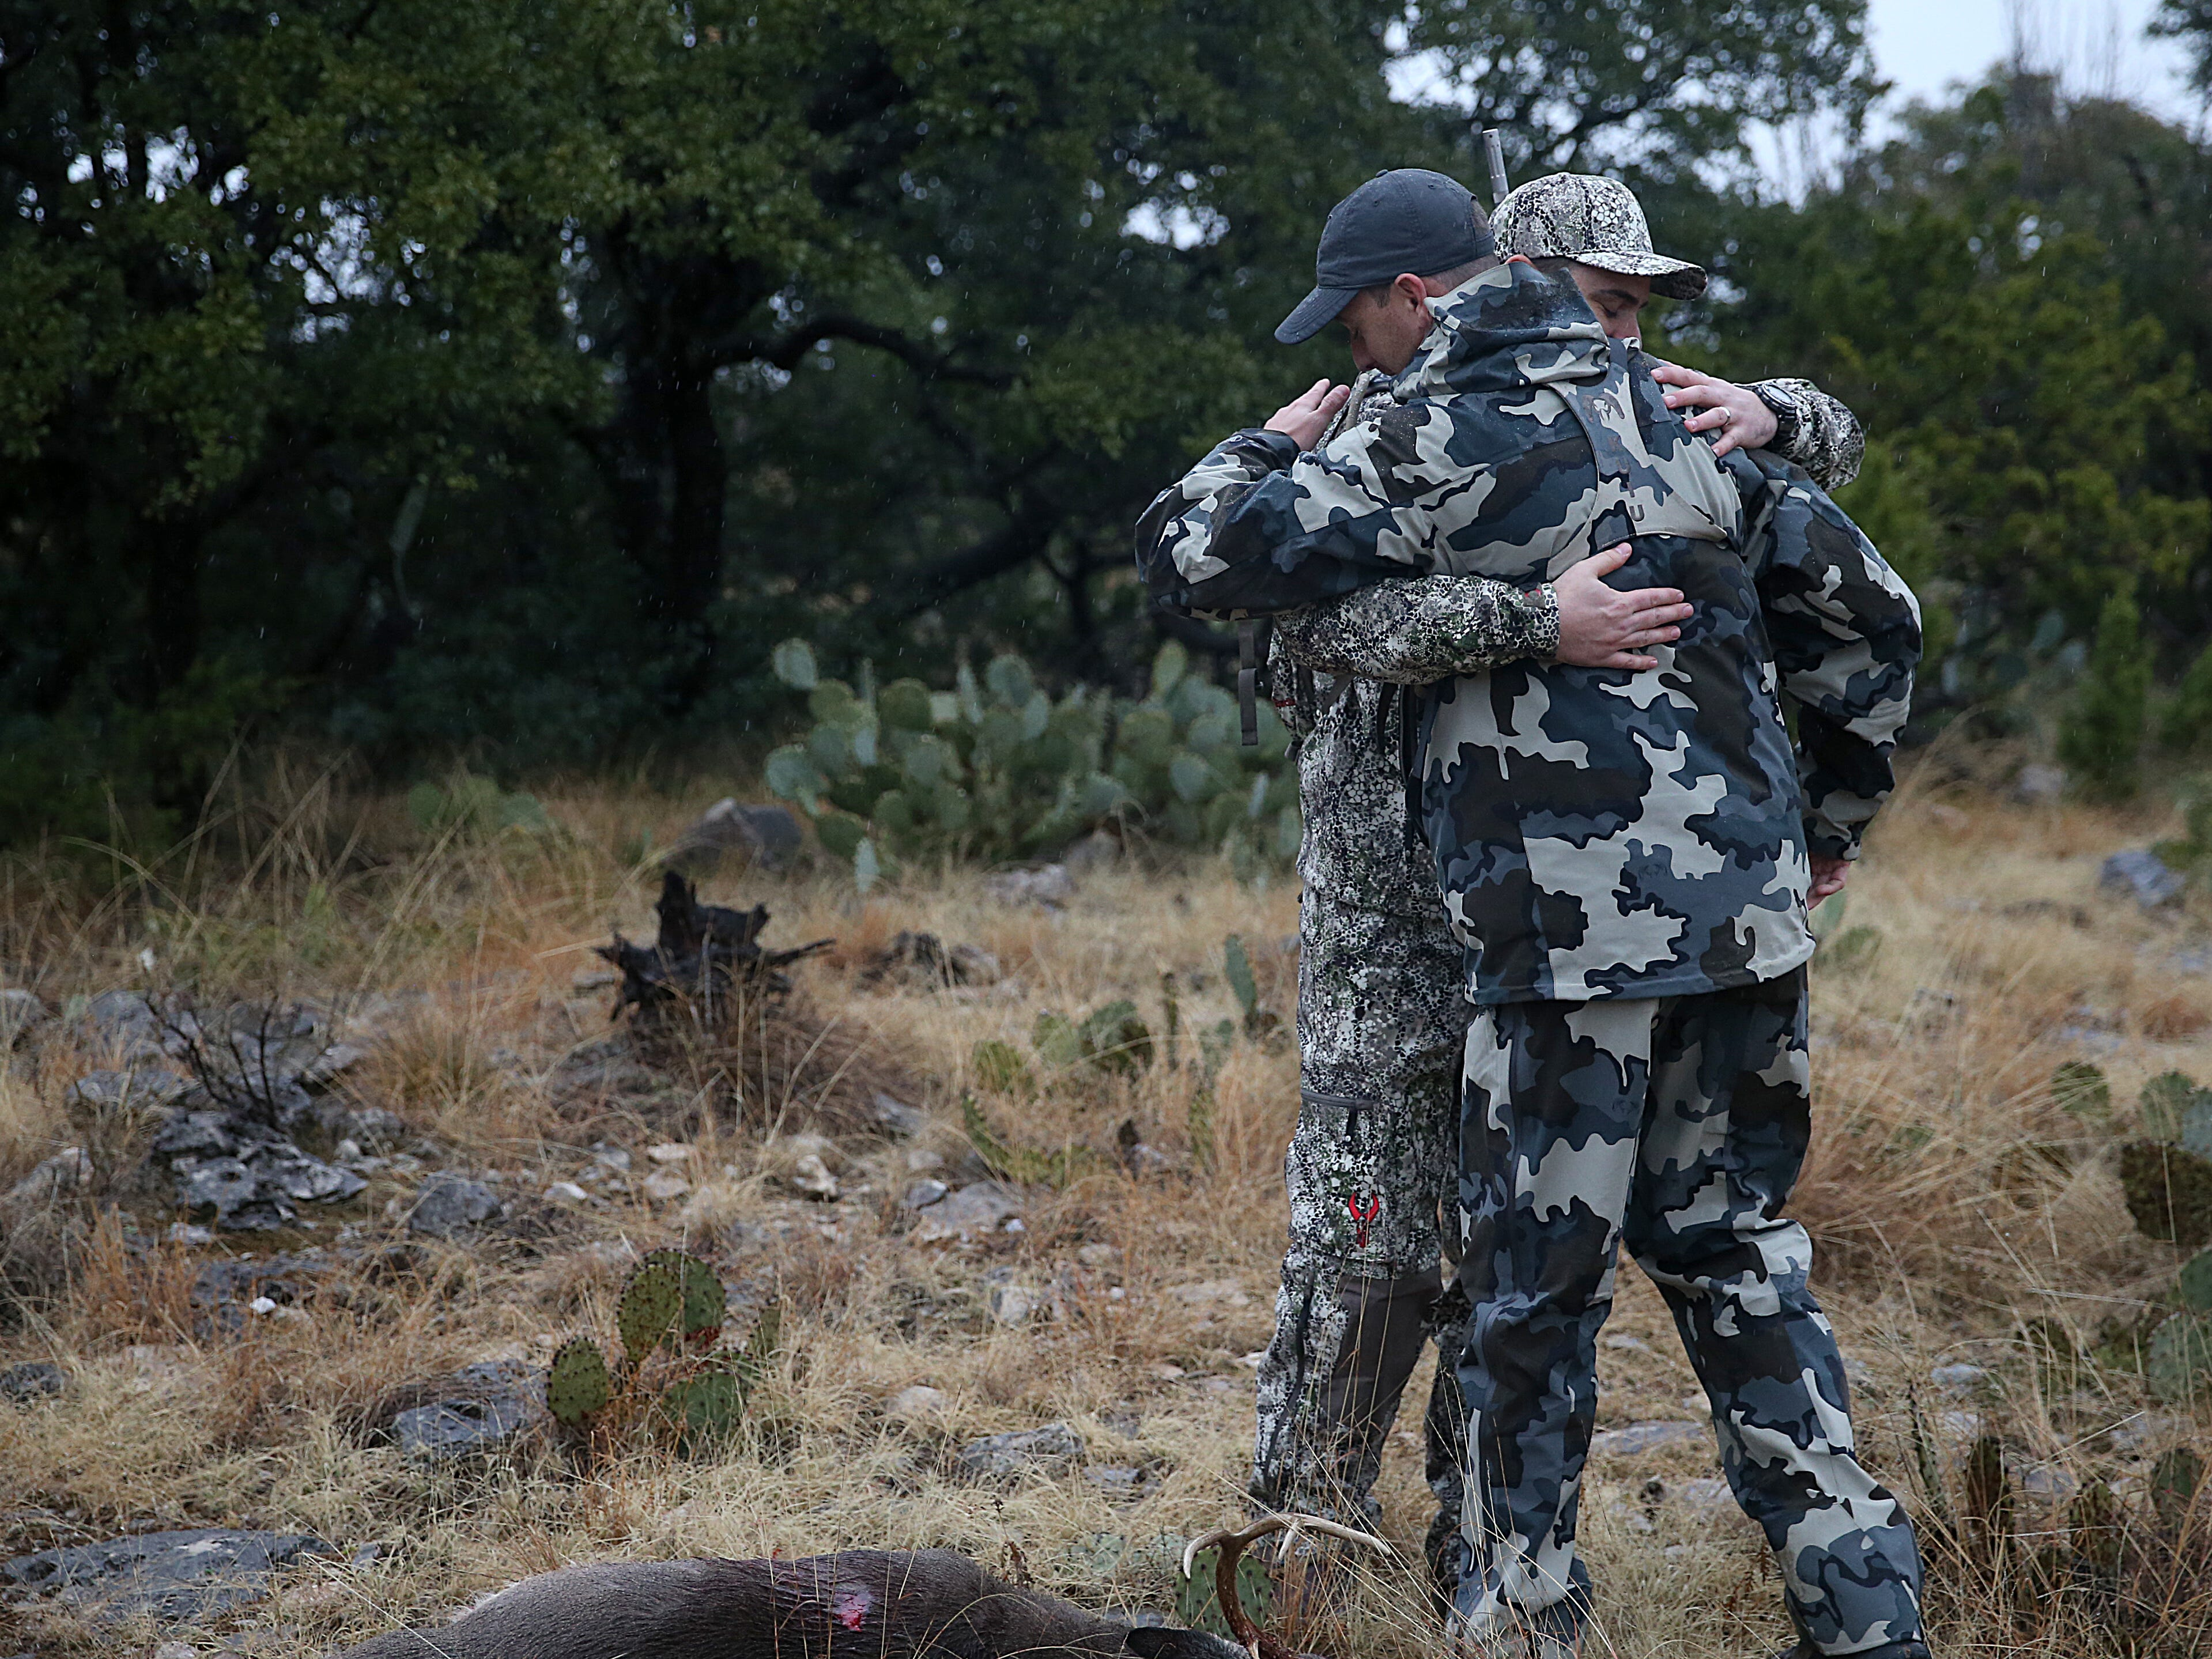 Joseph Lewis and his guide Ryan Dupriest embrace after Lewis shot his first deer during the annual deer hunt in Christoval Friday, Dec. 7, 2018 sponsored by San Angelo Support for Veterans and Lone Star Warriors Outdoors. The hunt included 18 combat injured veterans from across the nation.